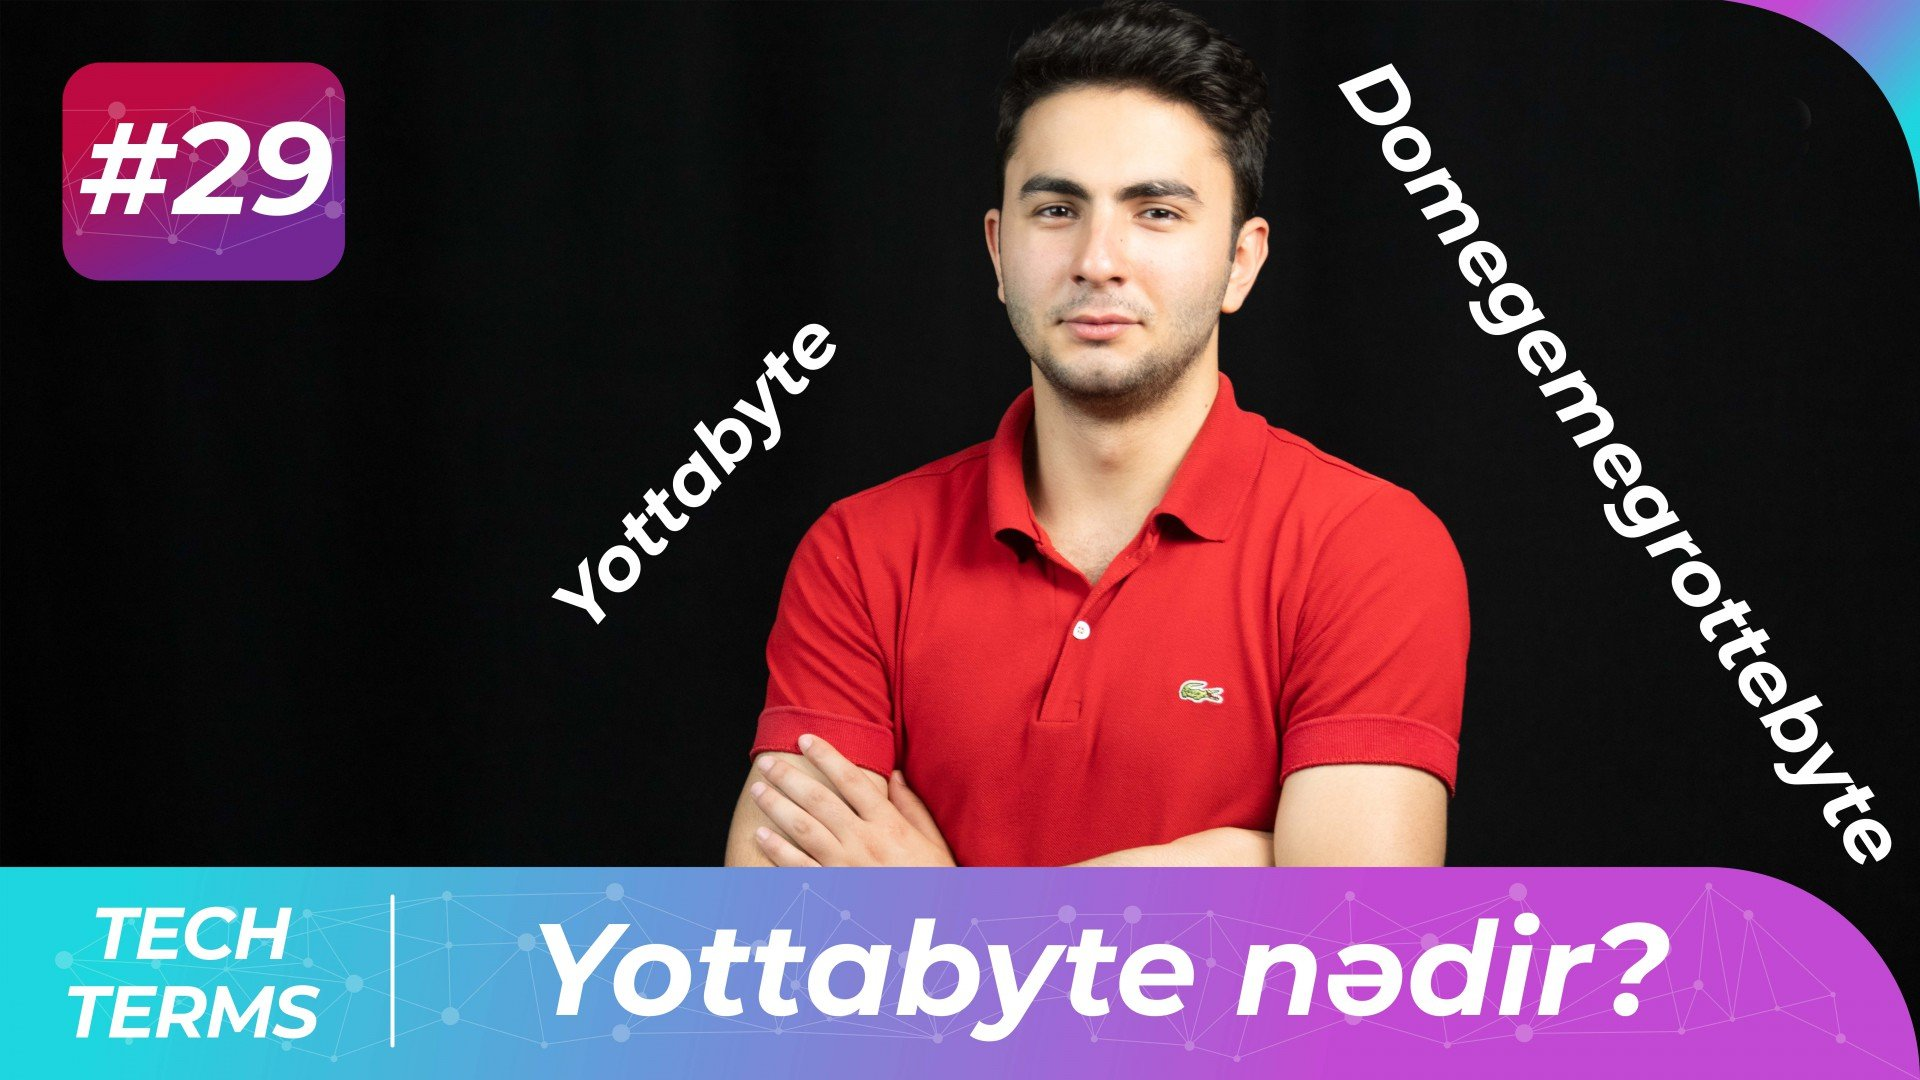 Yottabyte nədir? | Tech-Terms #29